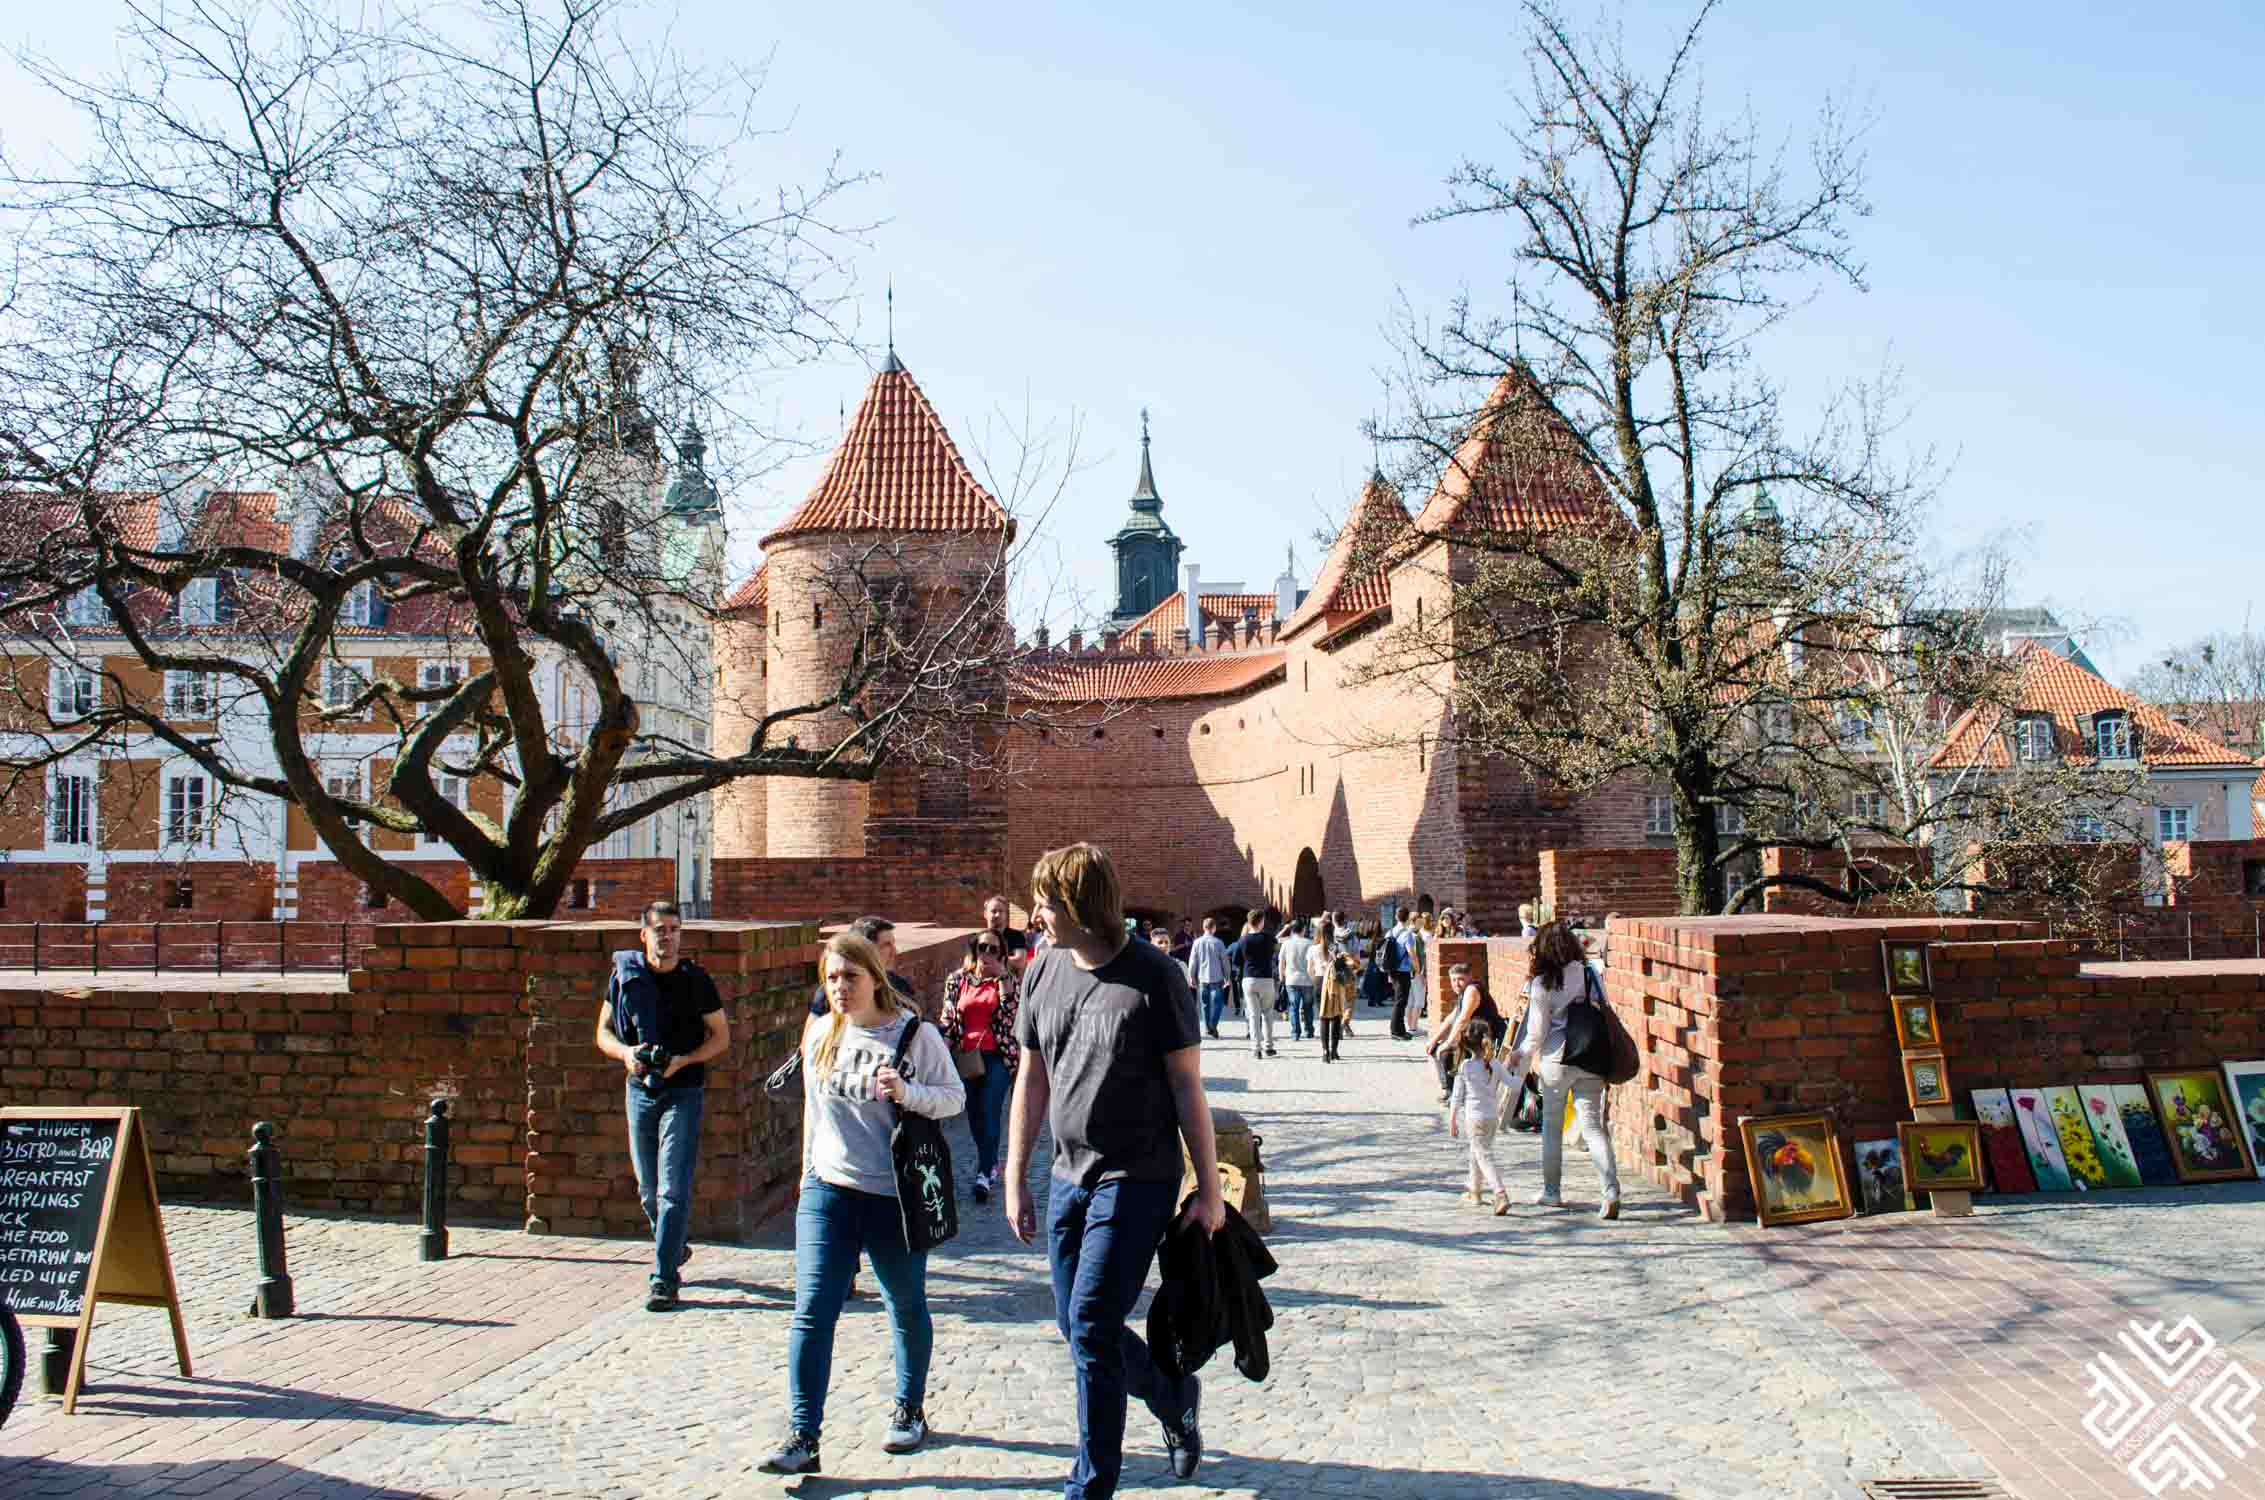 The Highlights of Warsaw: What to See and Do